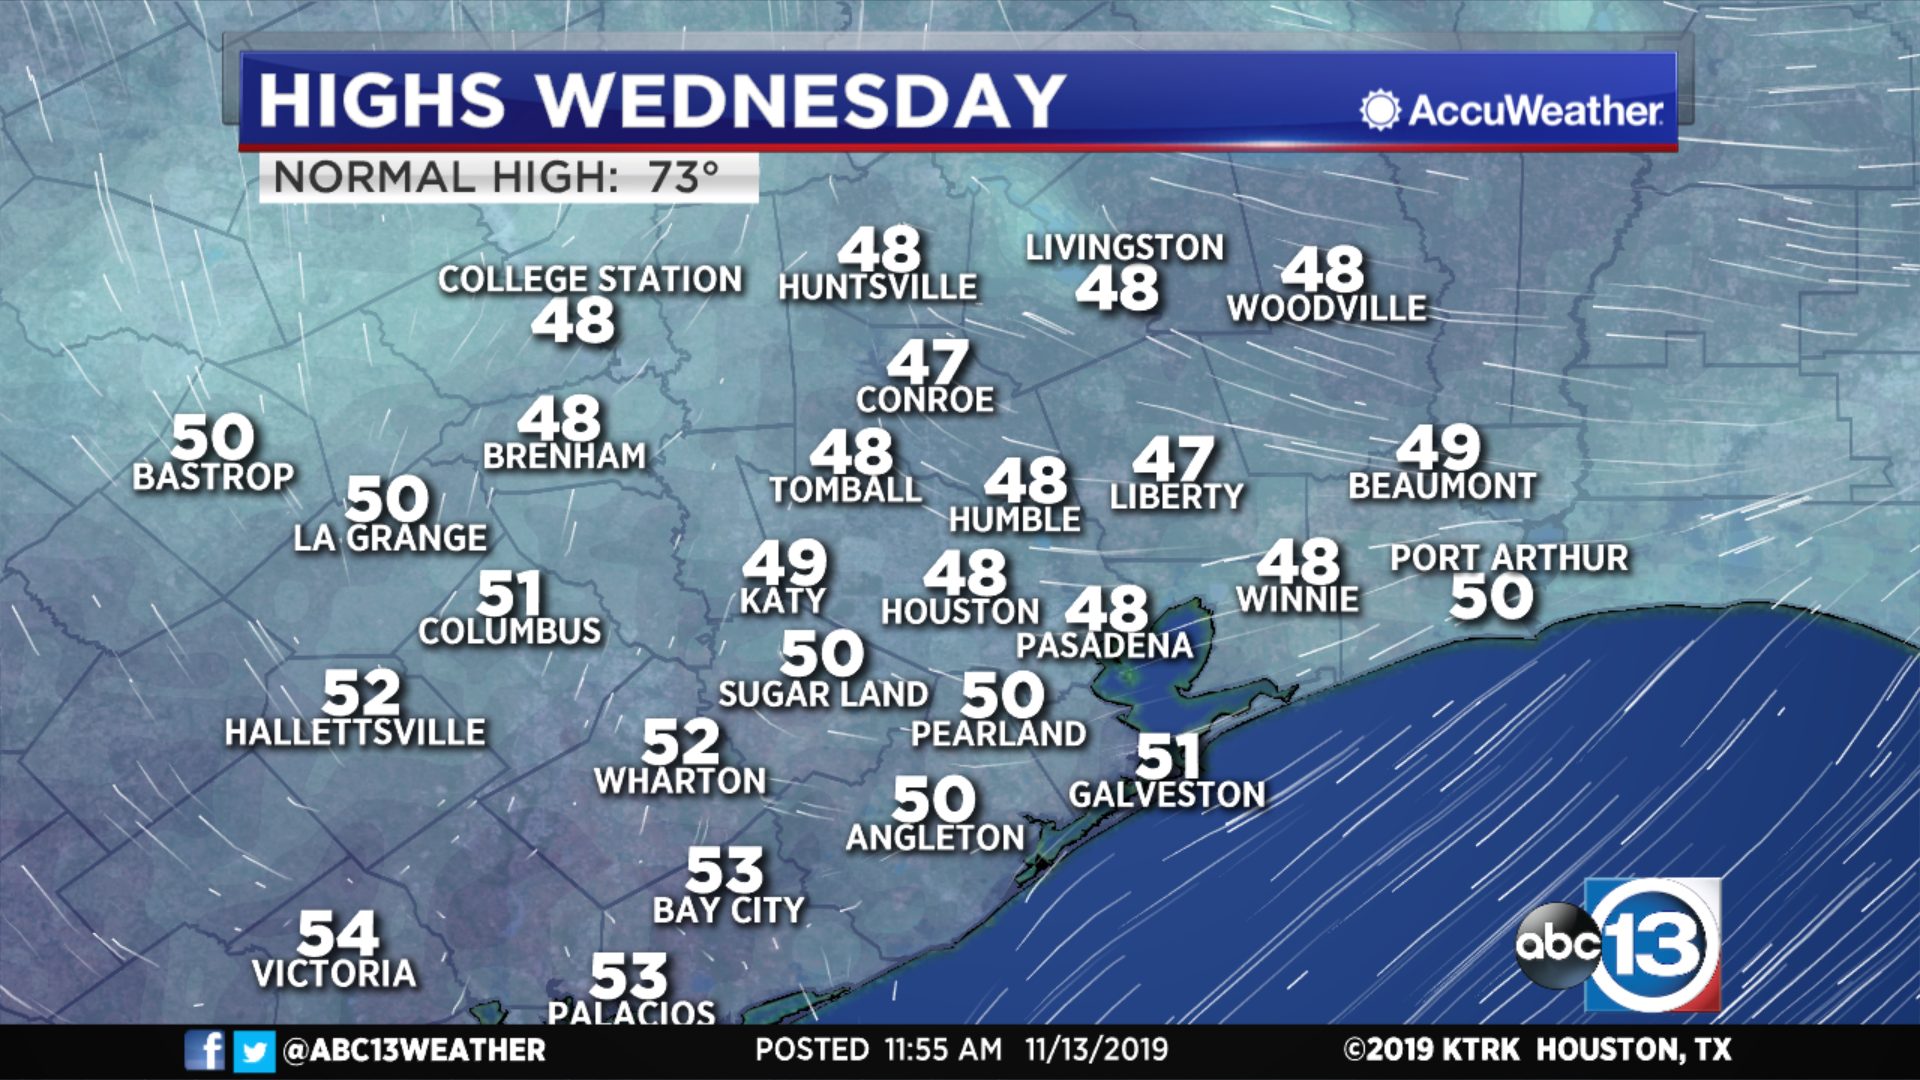 Chilly and cloudy today with slight rain chances returning in the evening